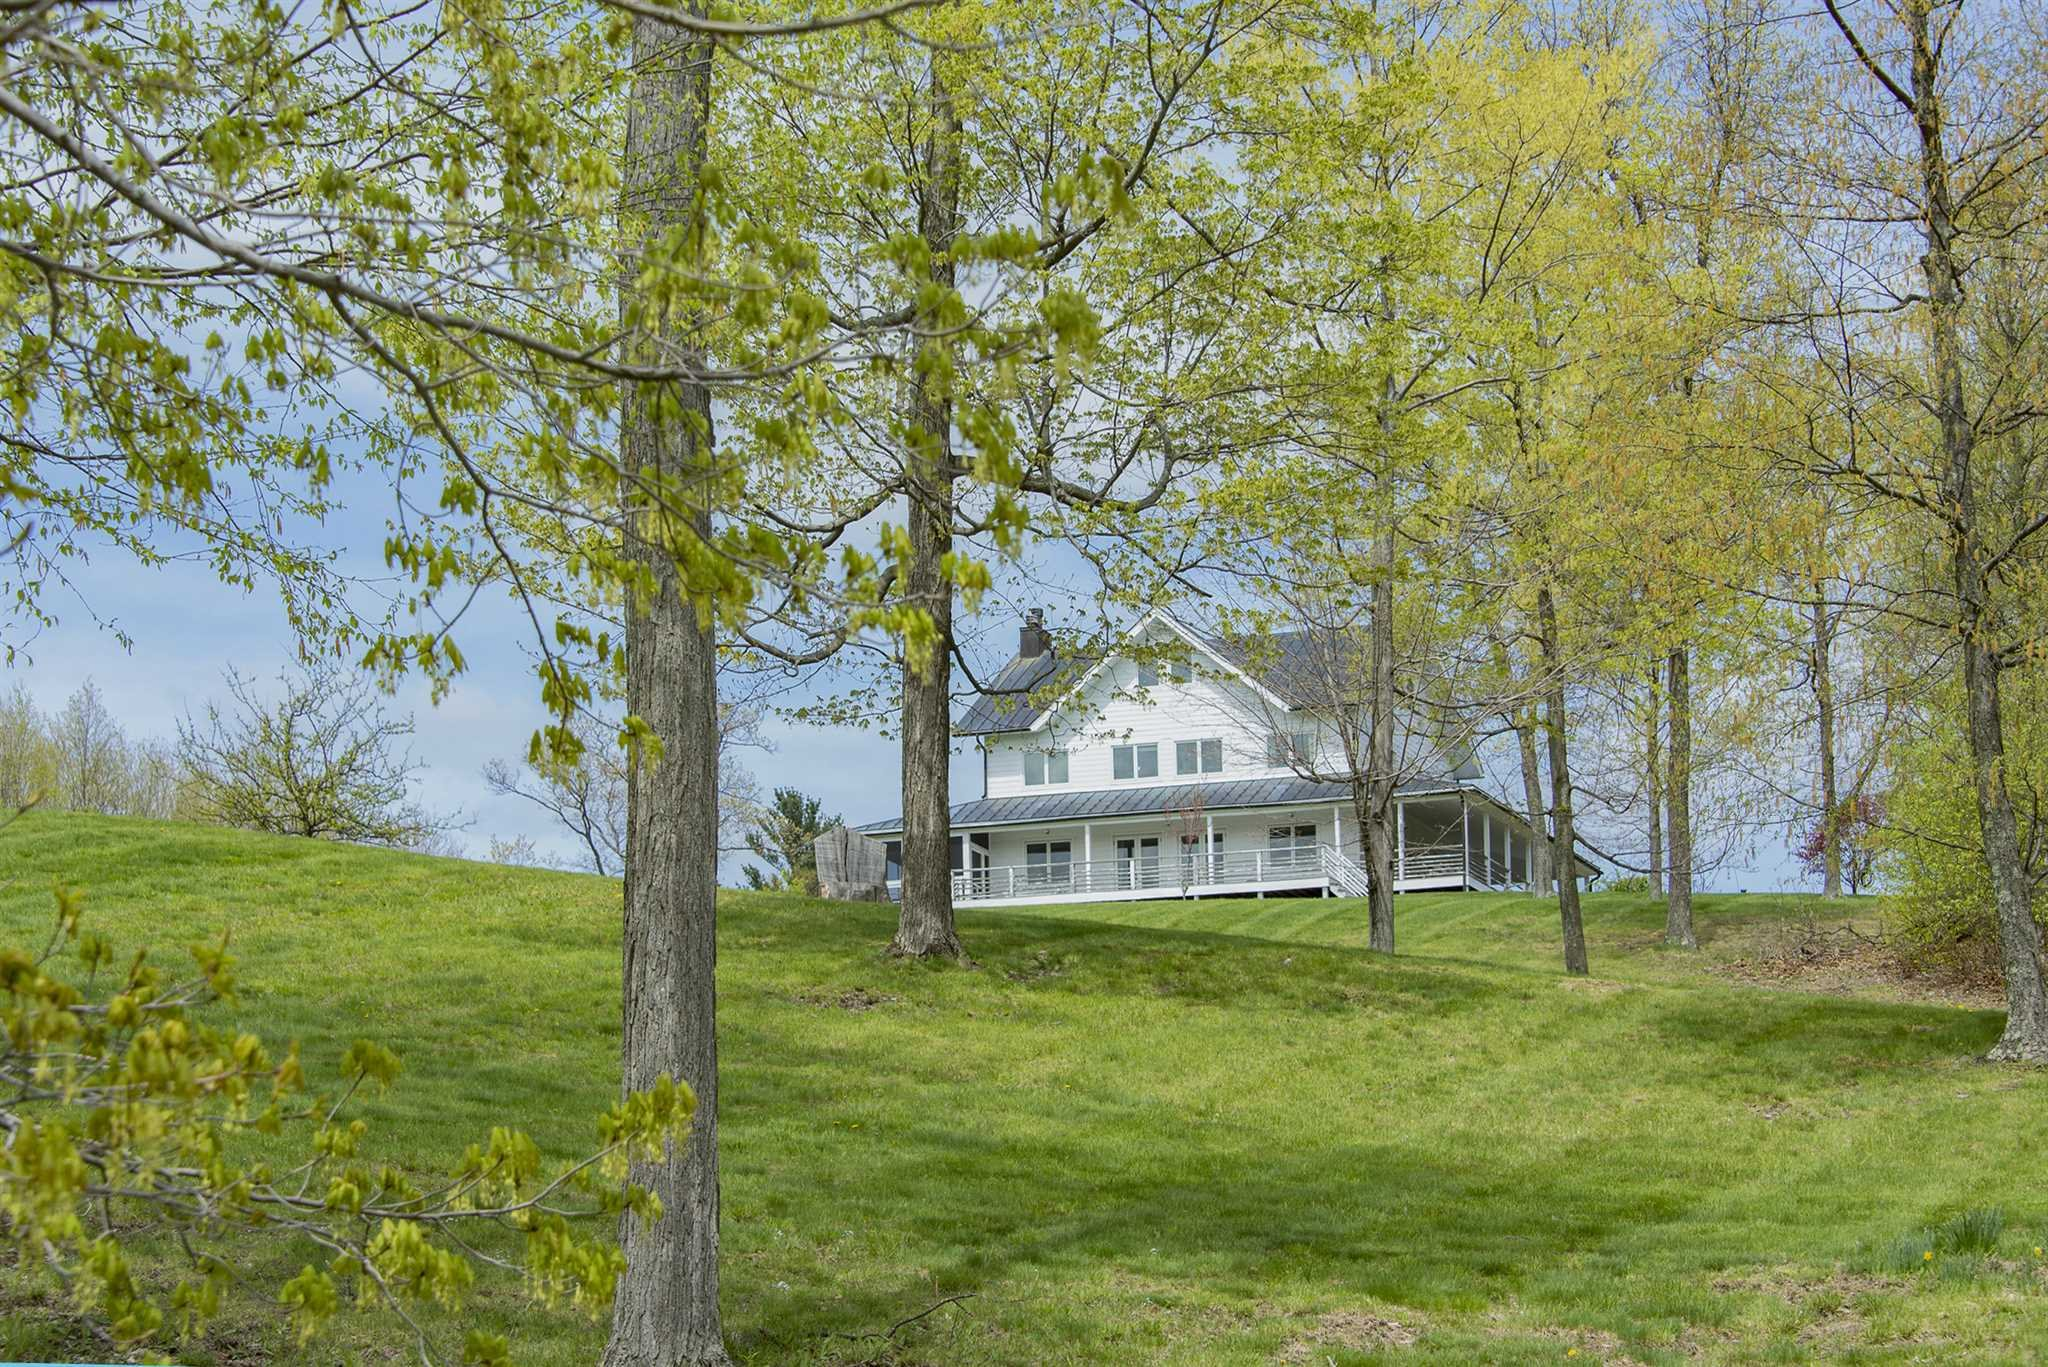 Single Family Home for Sale at 663 WOLFF HILL ROAD 663 WOLFF HILL ROAD Hillsdale, New York 12529 United States